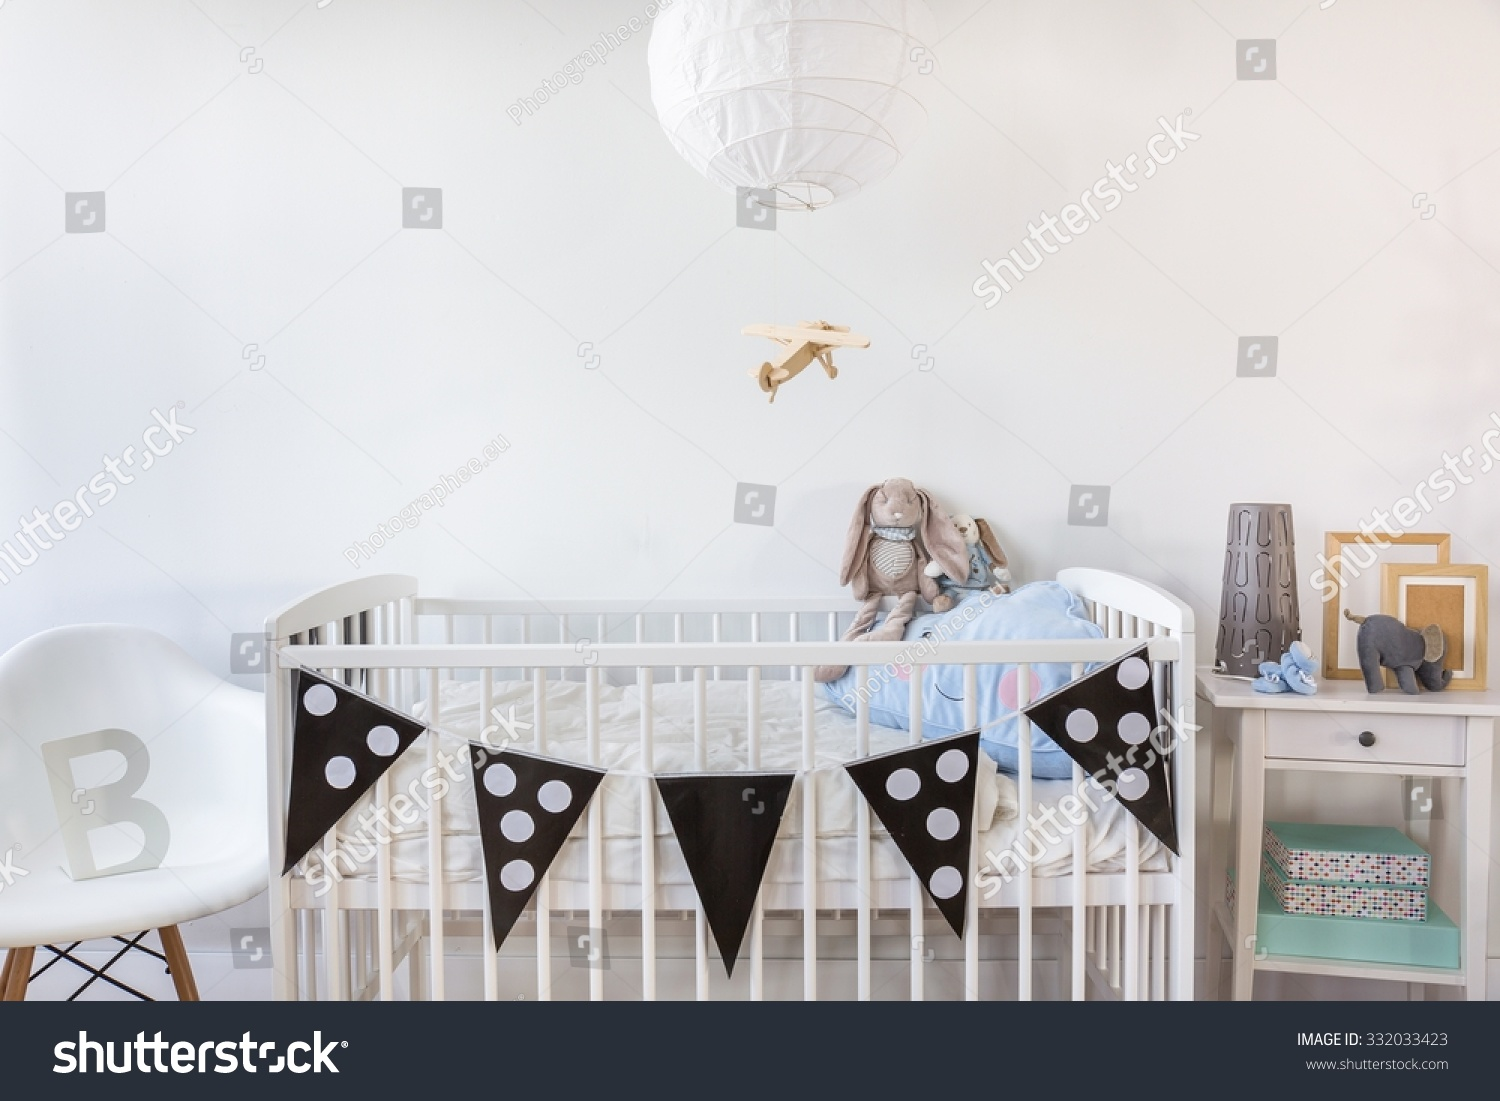 Image of white baby cot with decoration stock photo for Baby cot decoration images